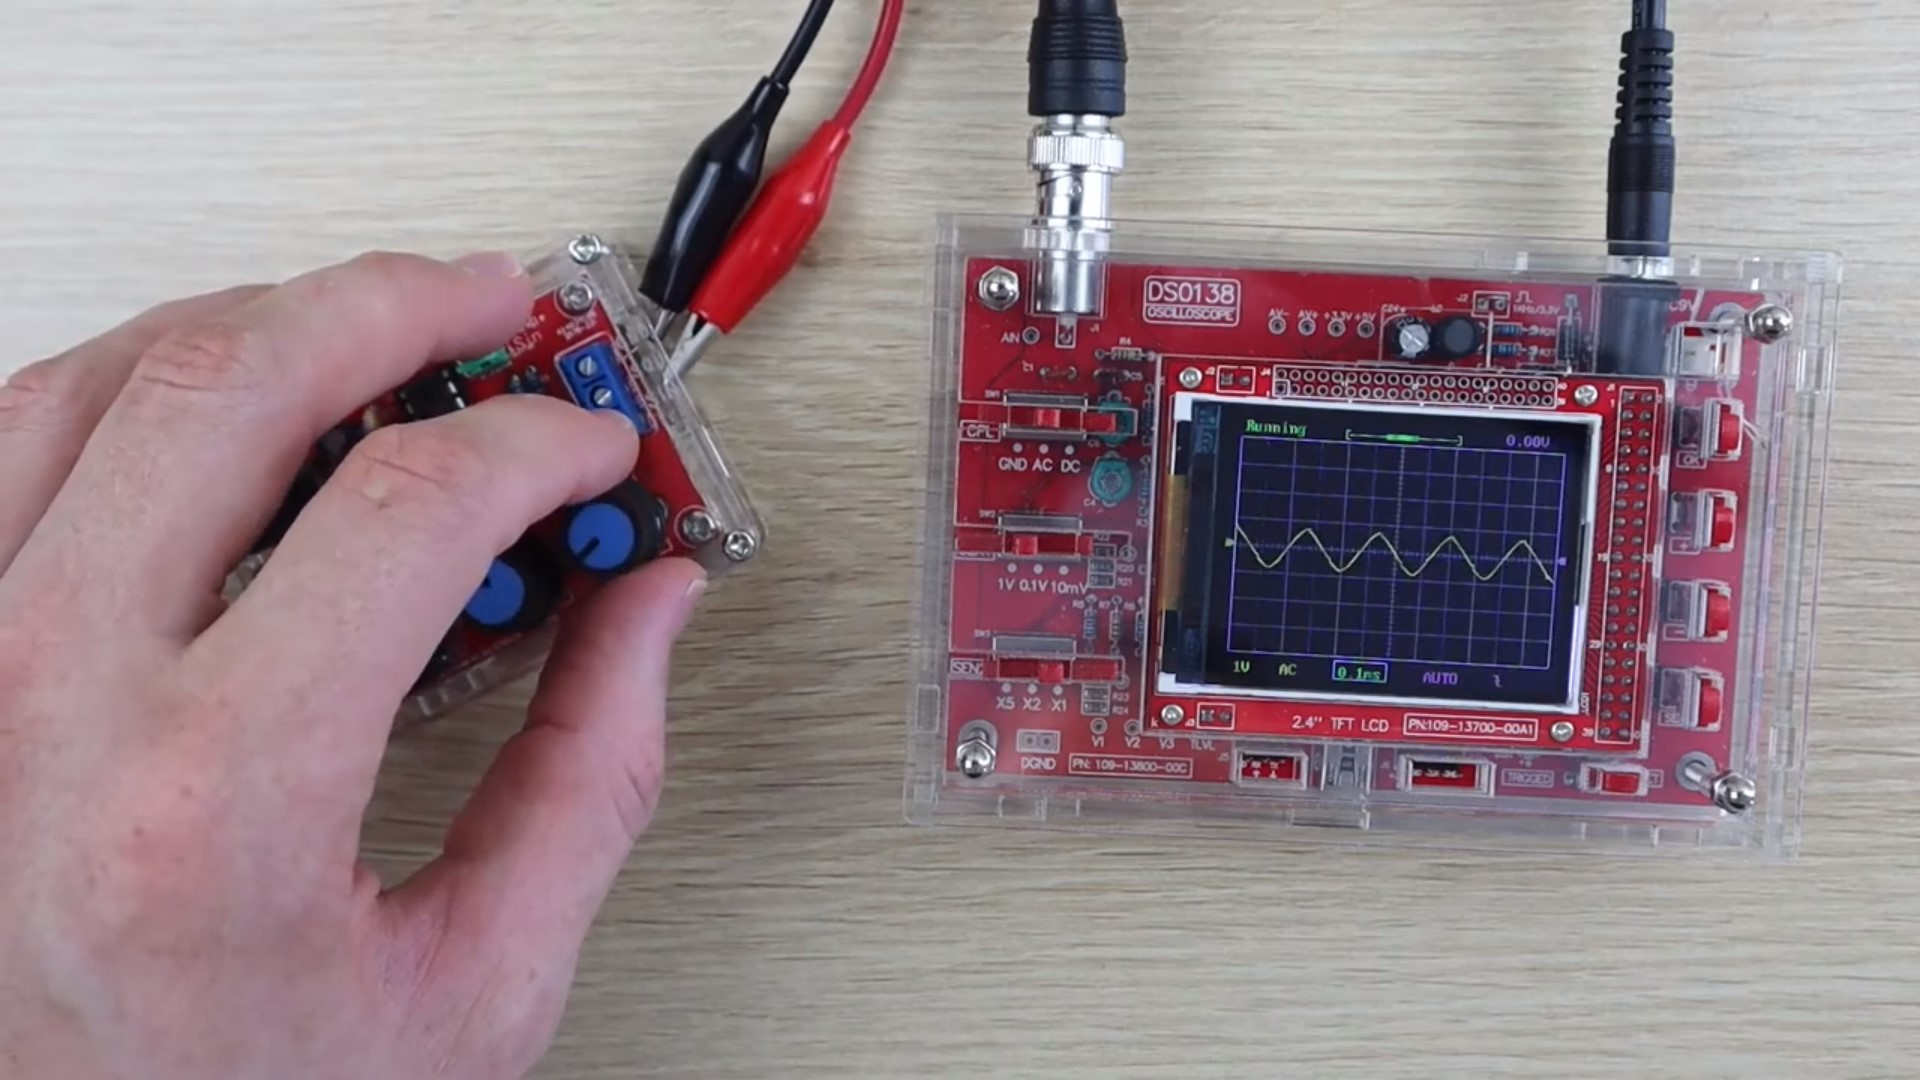 Testing Oscilloscope Input With Function Generator